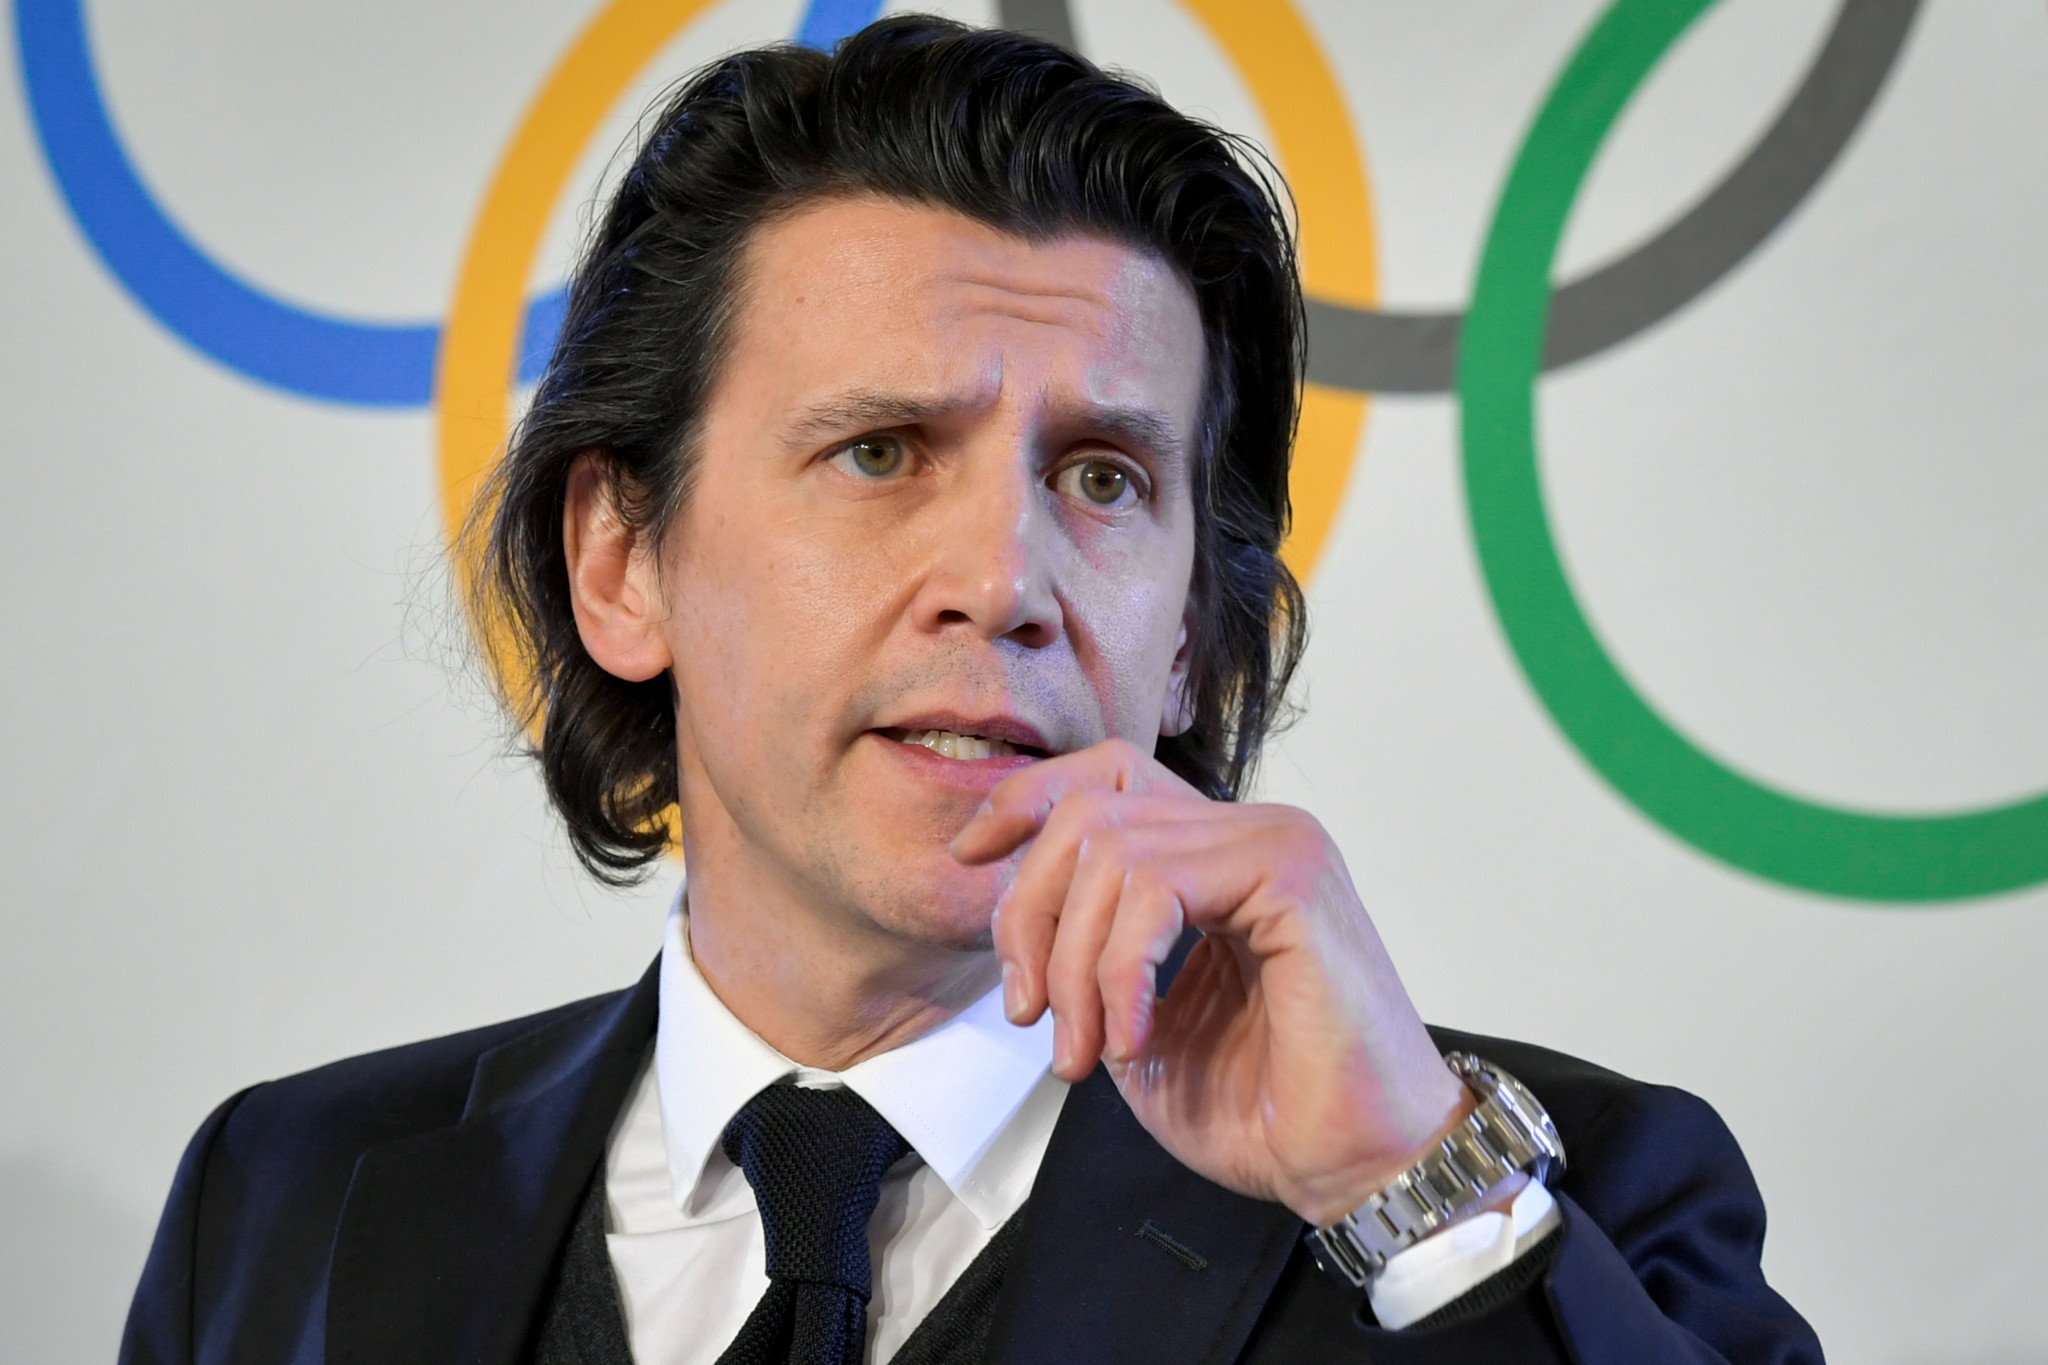 IOC Executive Director for the Olympic Games, Christophe Dubi, was among those to visit Calgary ©Getty Images